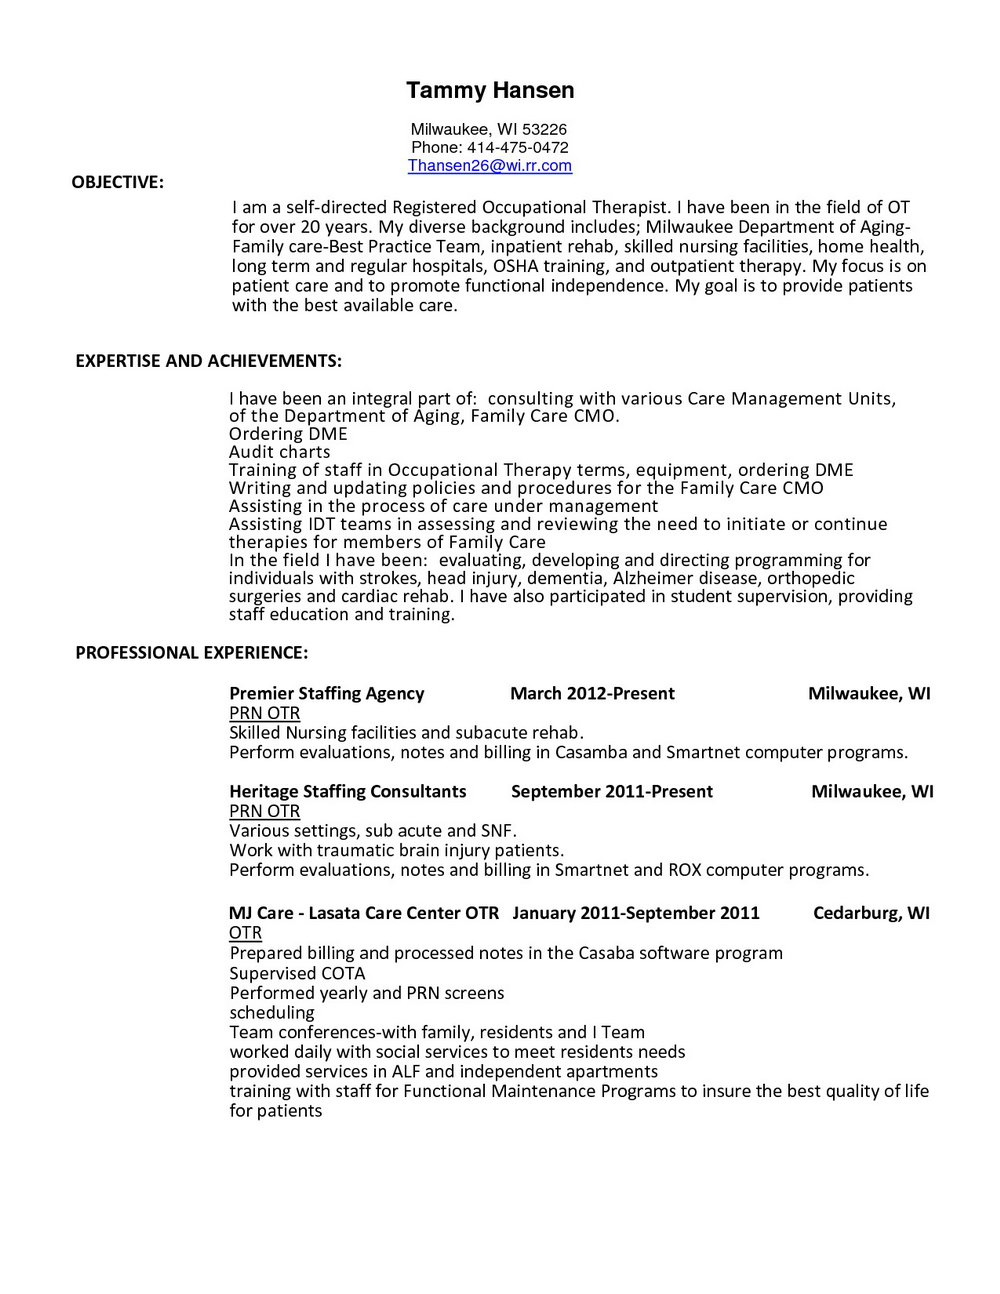 3.3.4 Respiratory Therapy Resume Examples